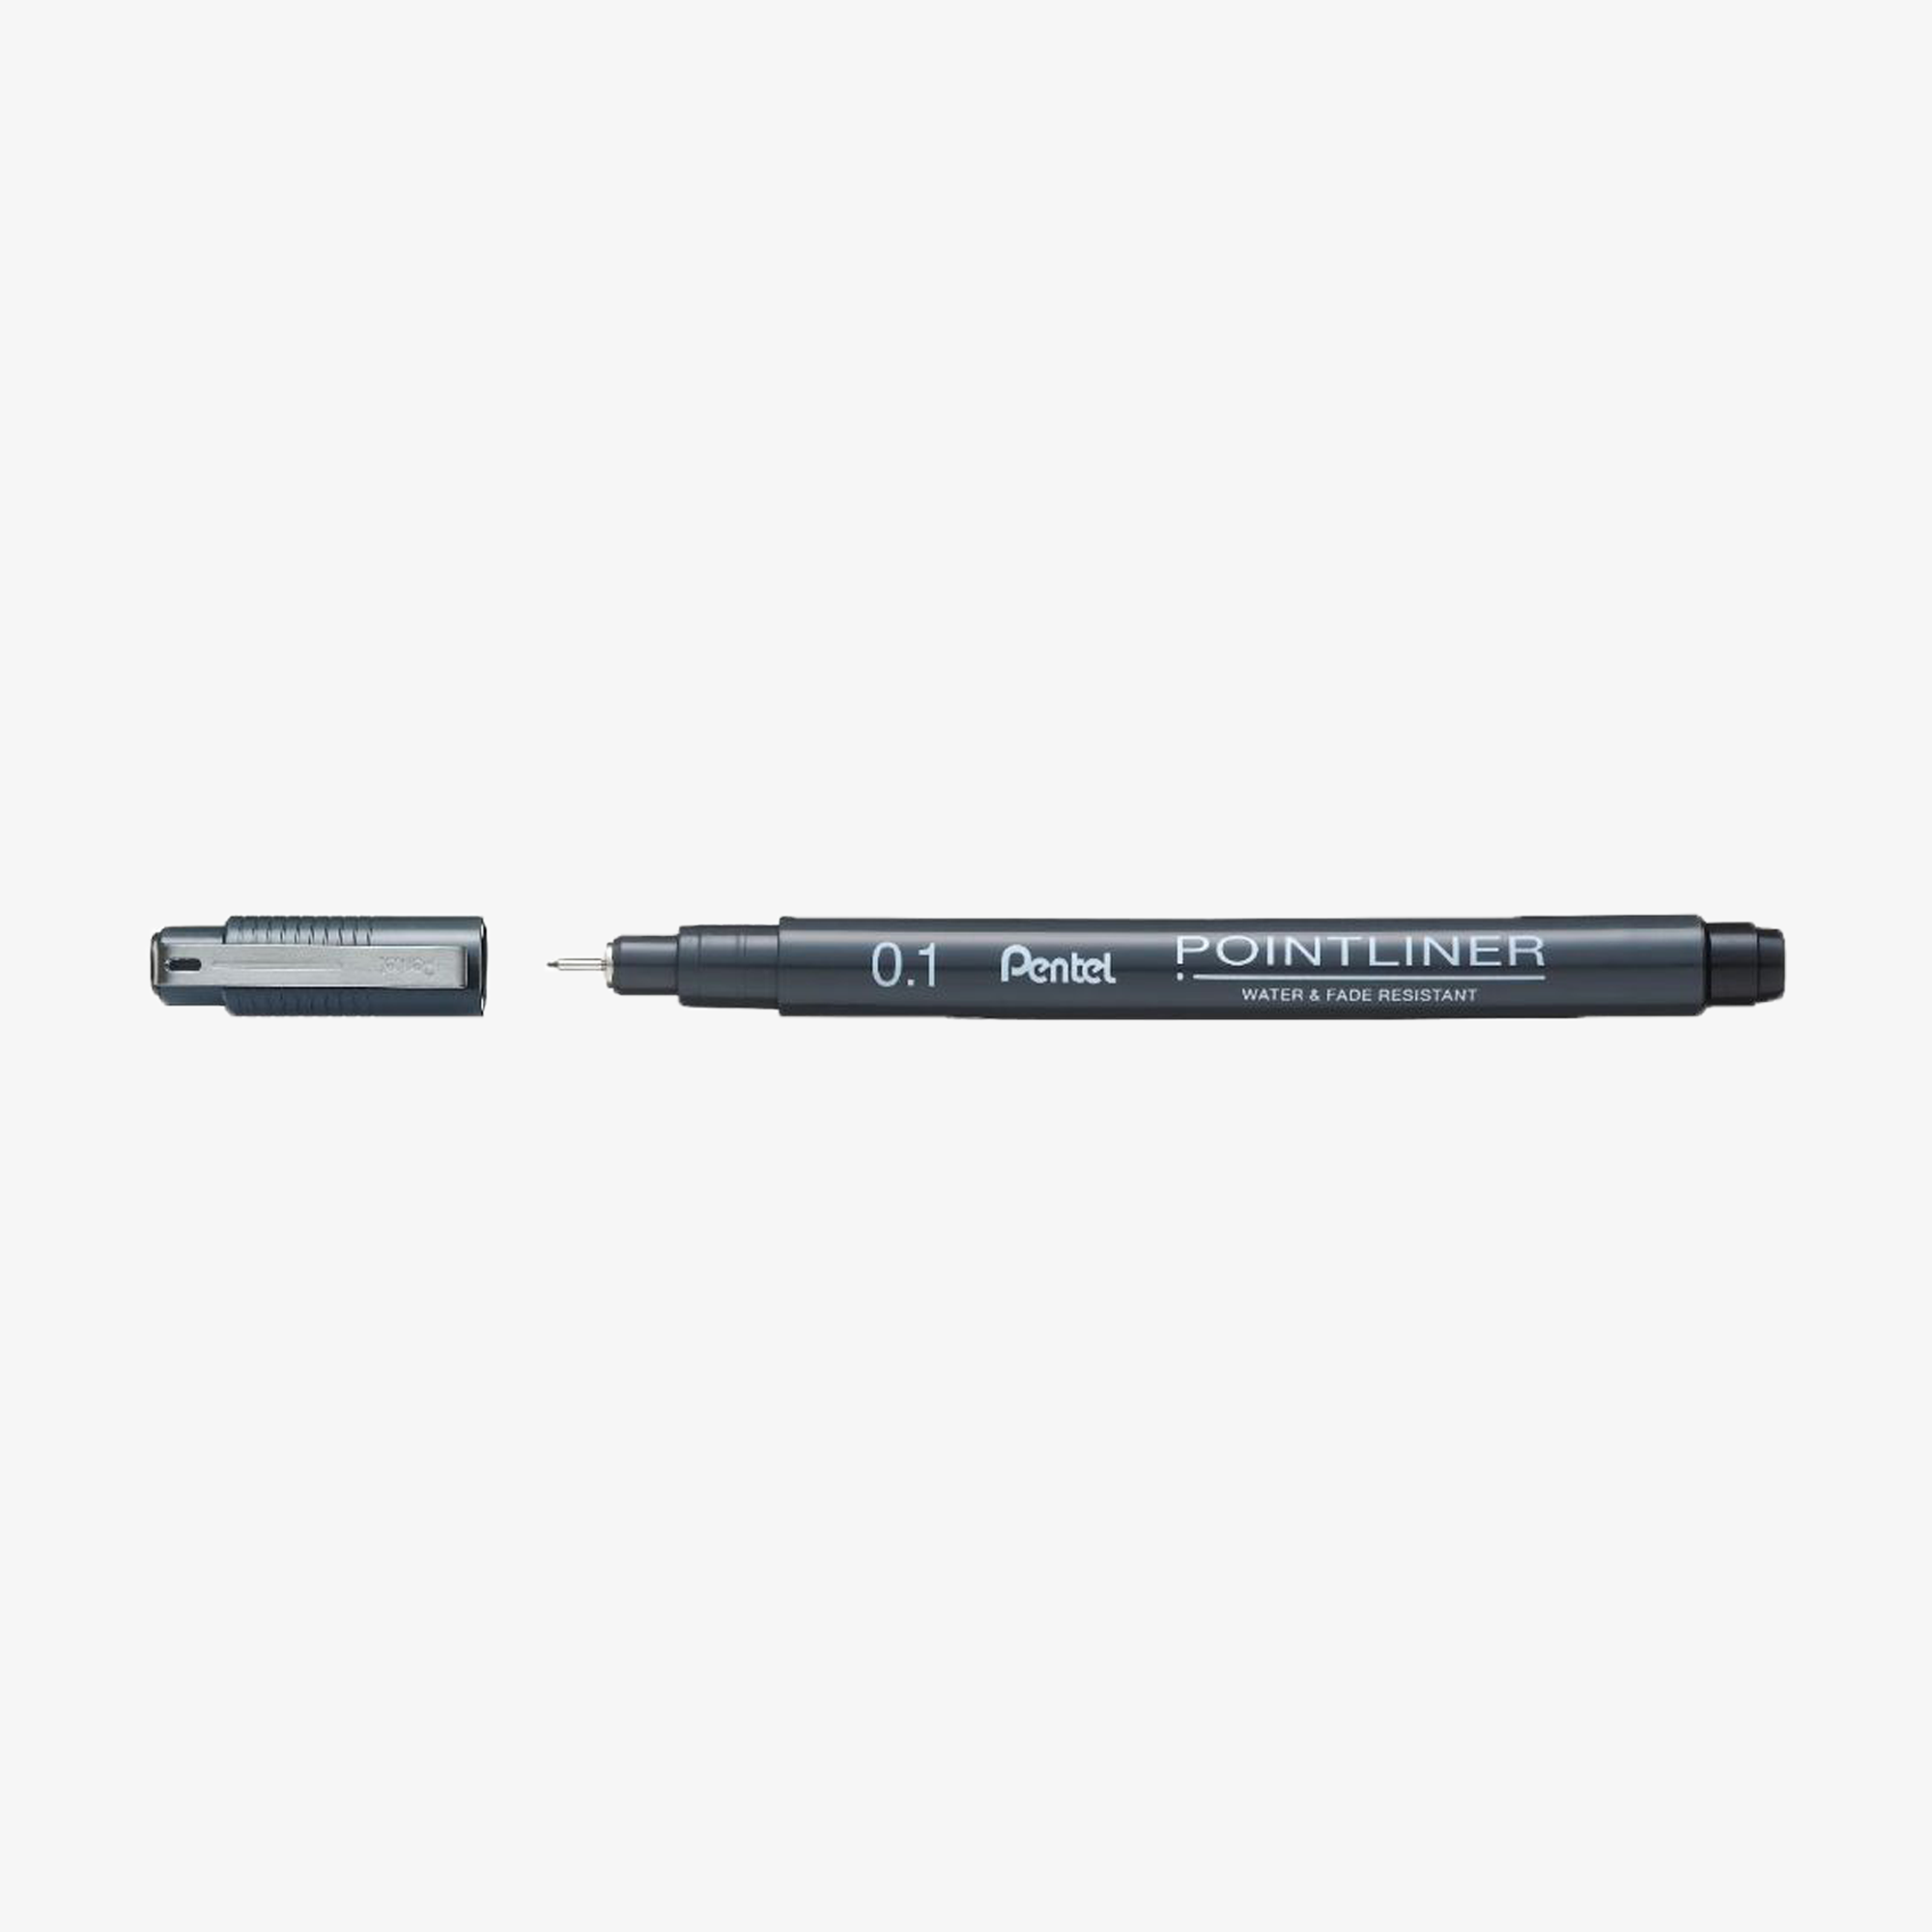 POINTLINER / 0.1 MM